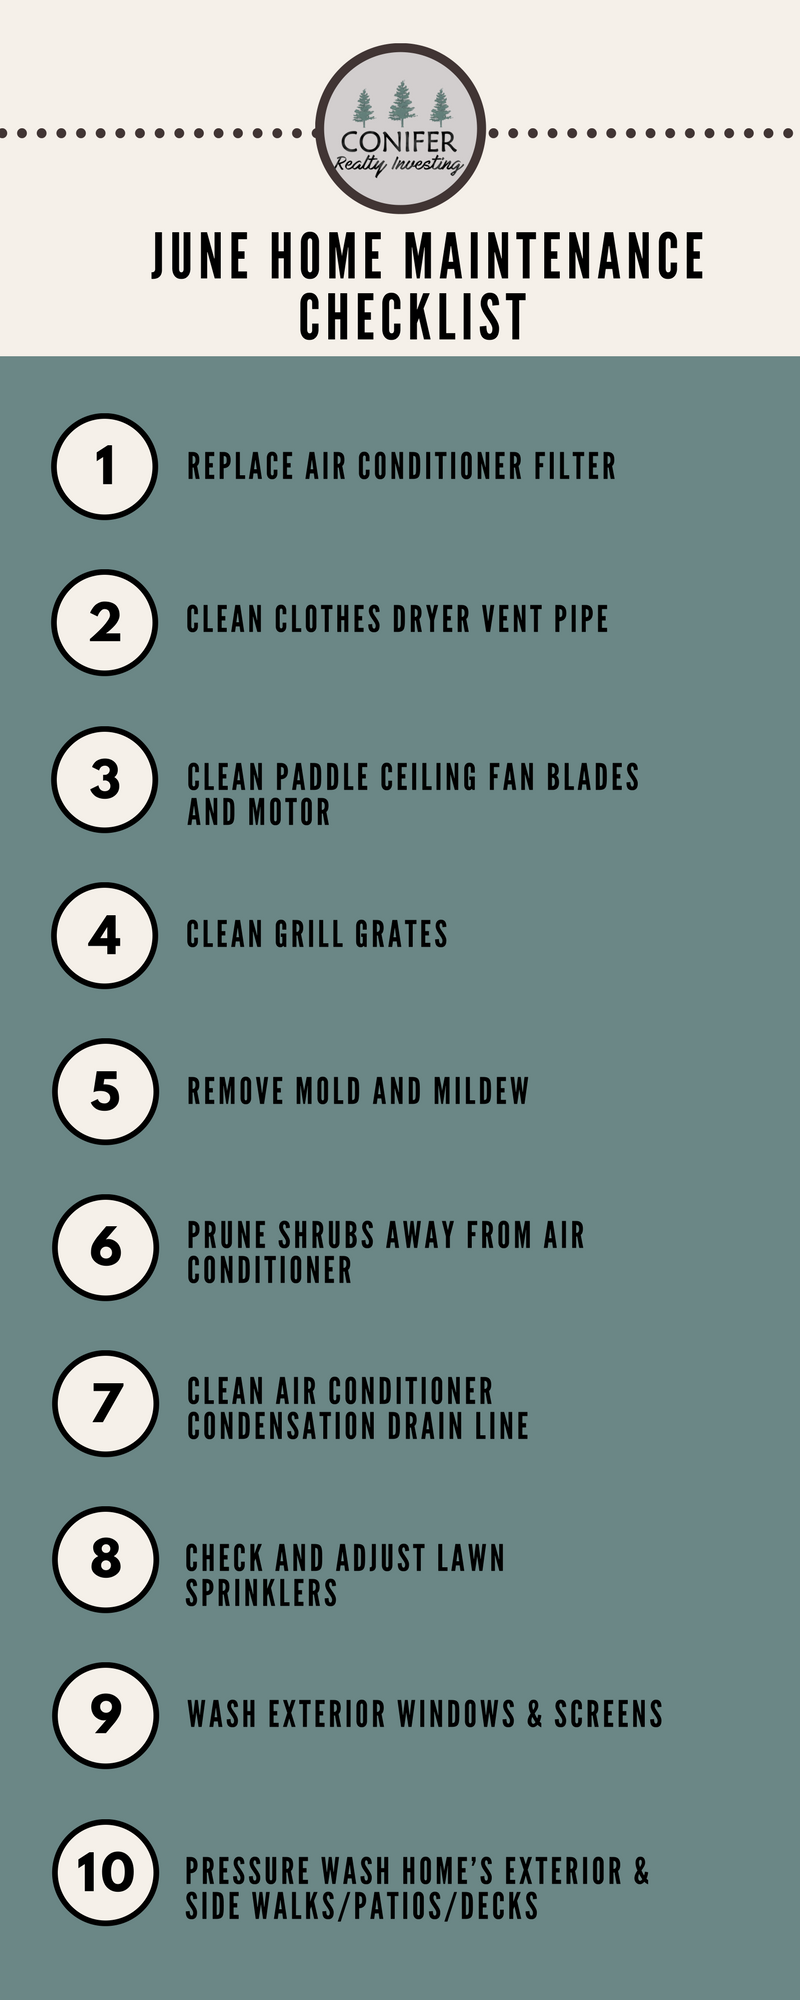 june home maintenance checklist | real estate | home